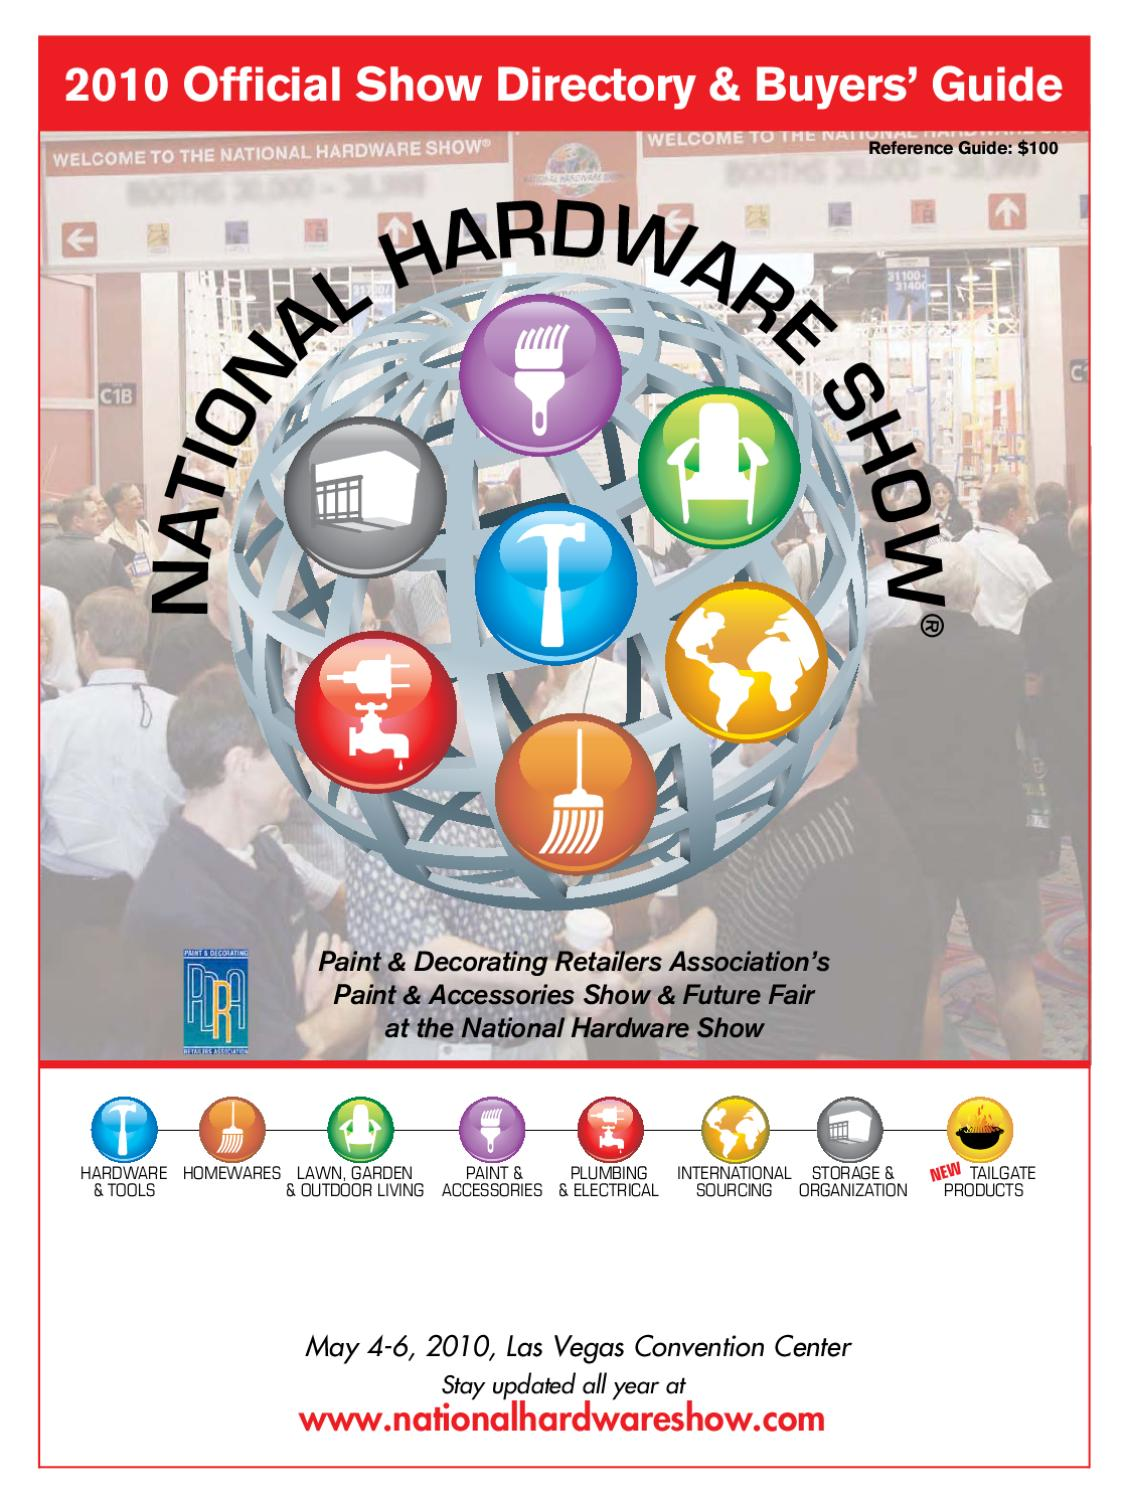 2010 National Hardware Show Digital Directory by Reed Exhibitions - issuu